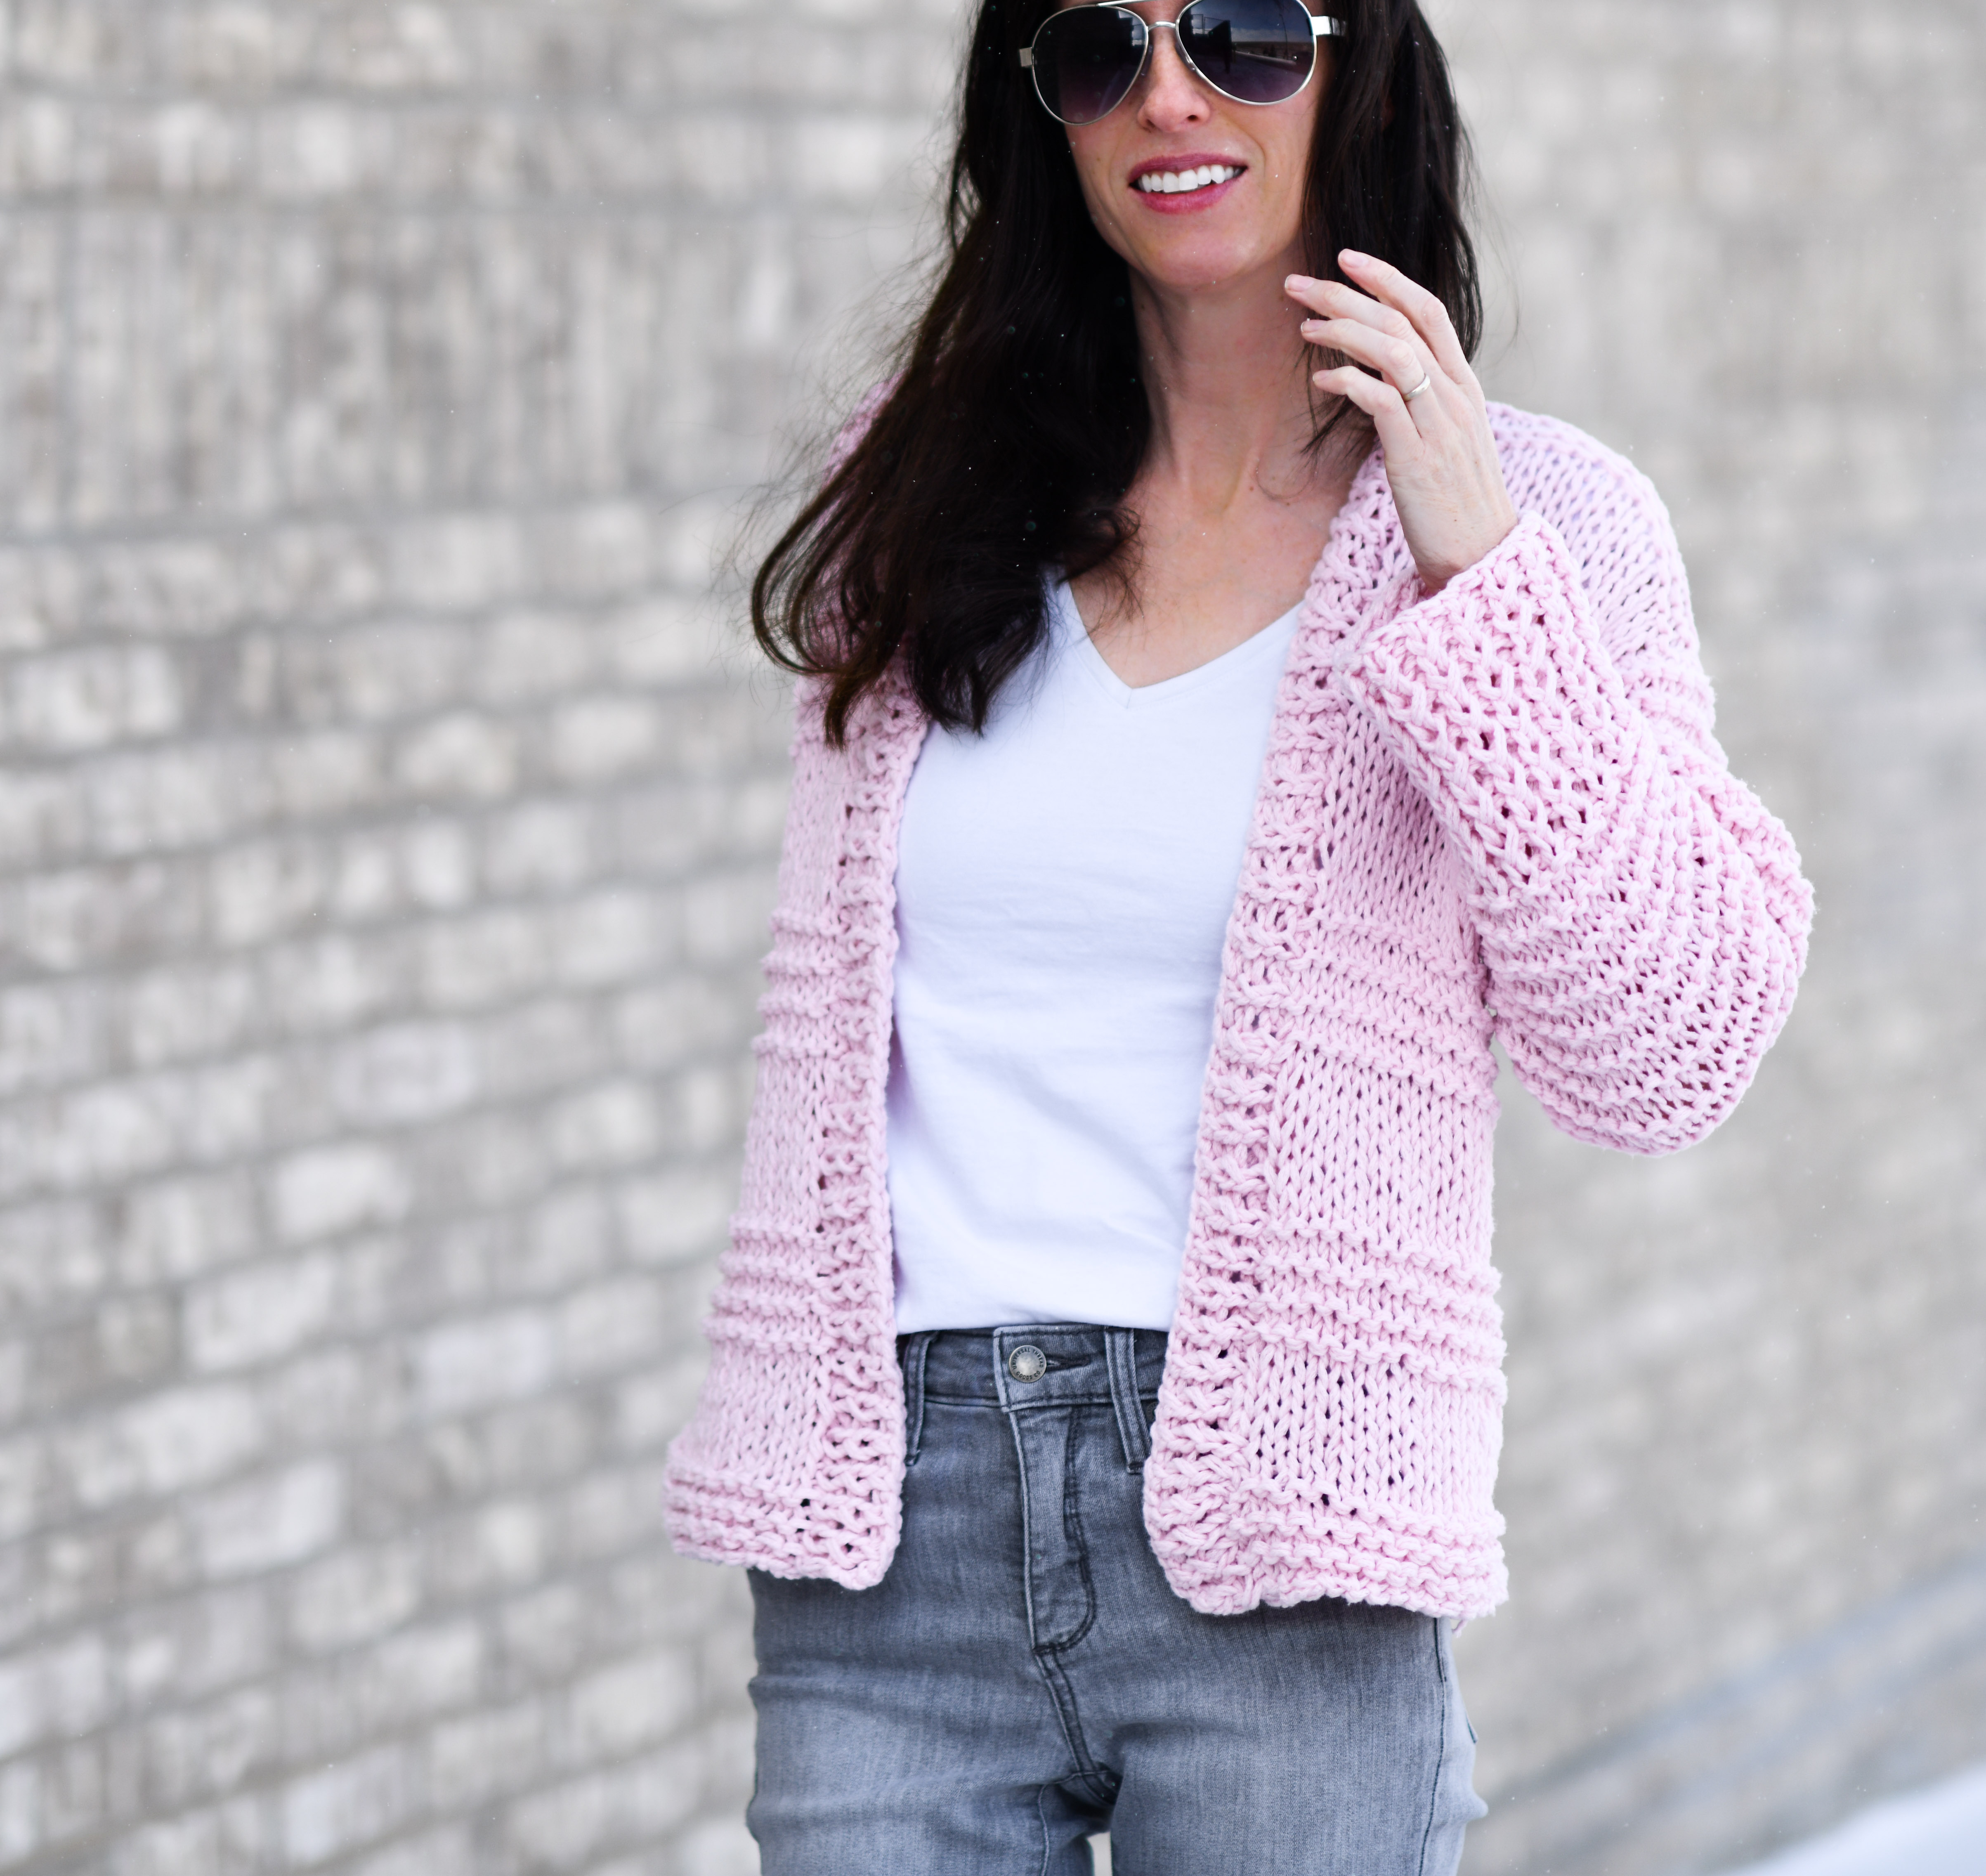 Off The Shoulder Sweater Knitting Pattern Cotton Candy Easy Knit Cardigan Pattern Mama In A Stitch